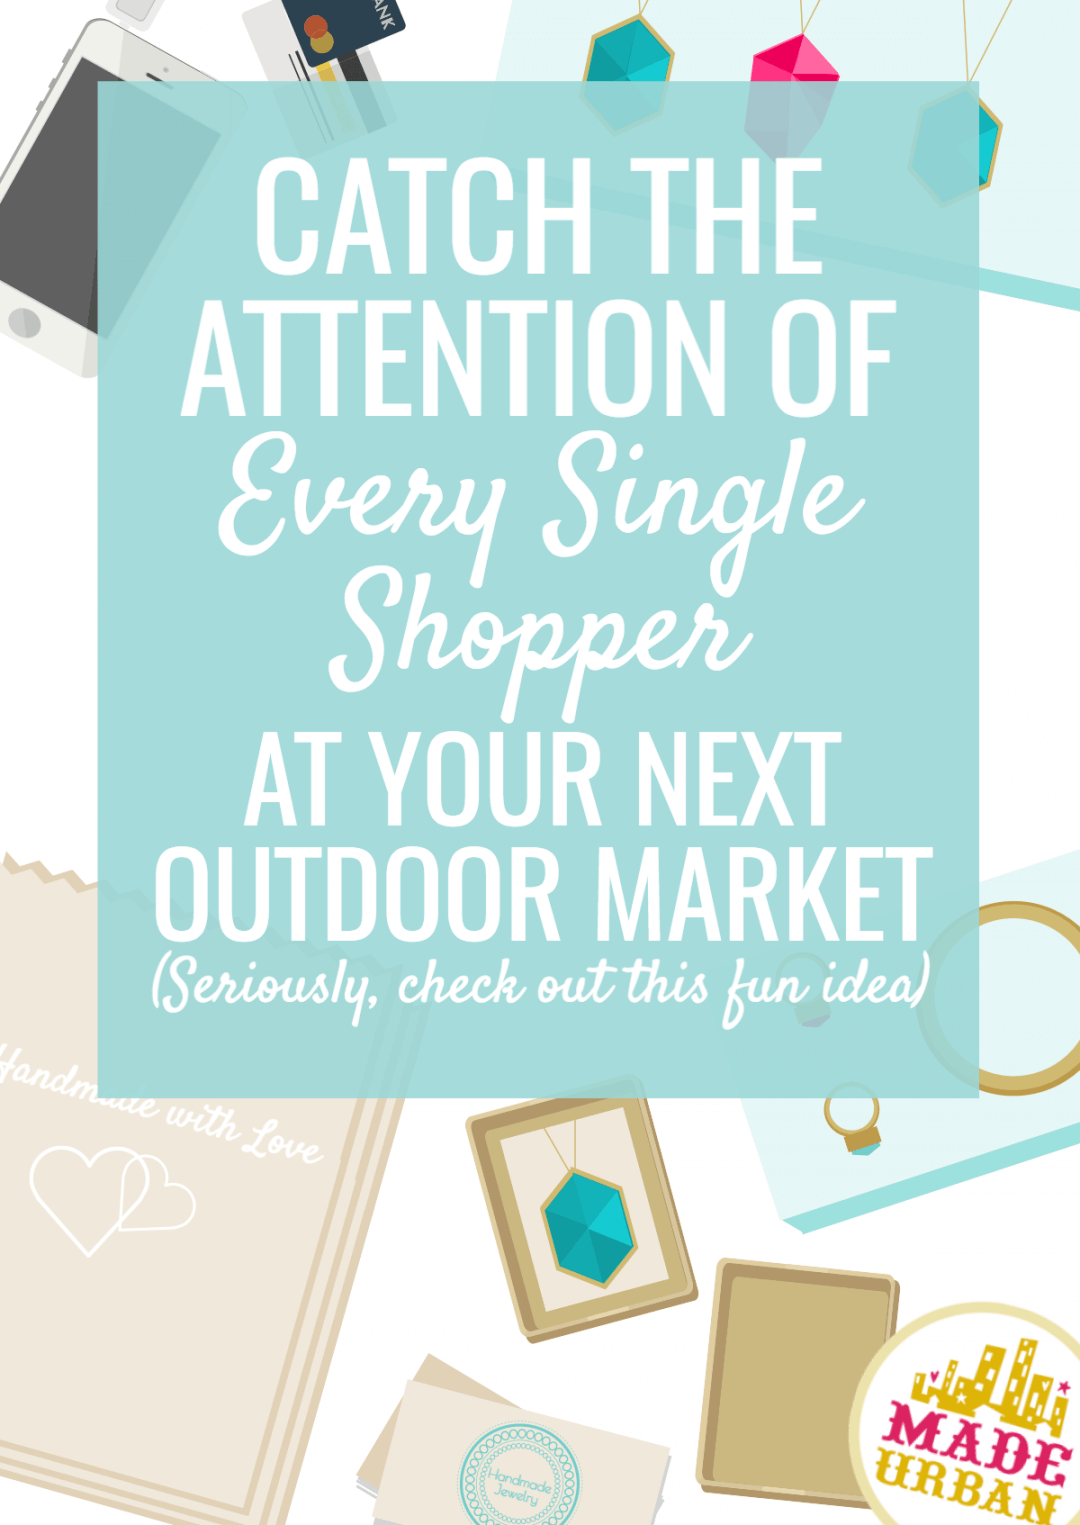 How to Attract More Shoppers to your Outdoor Market Booth